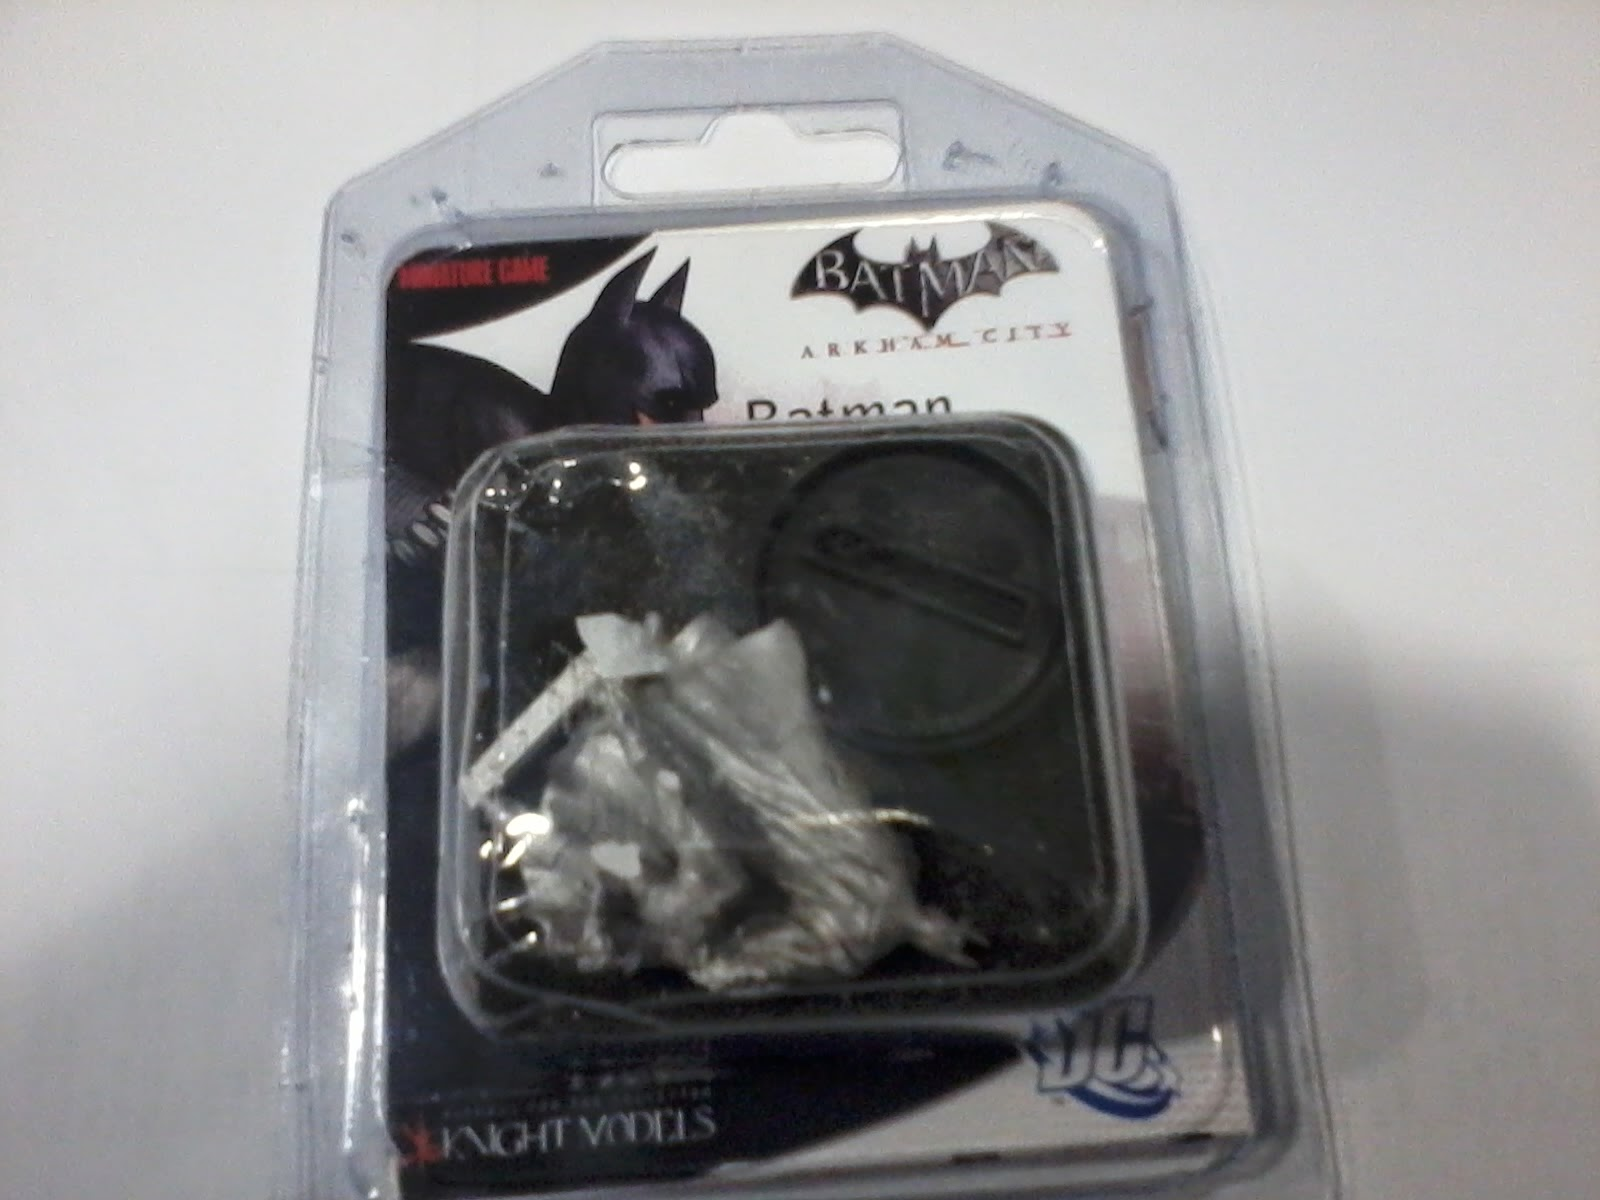 batman-batman miniature games-batman arkham asylum-unboxing batman model arkham asylum- (1)